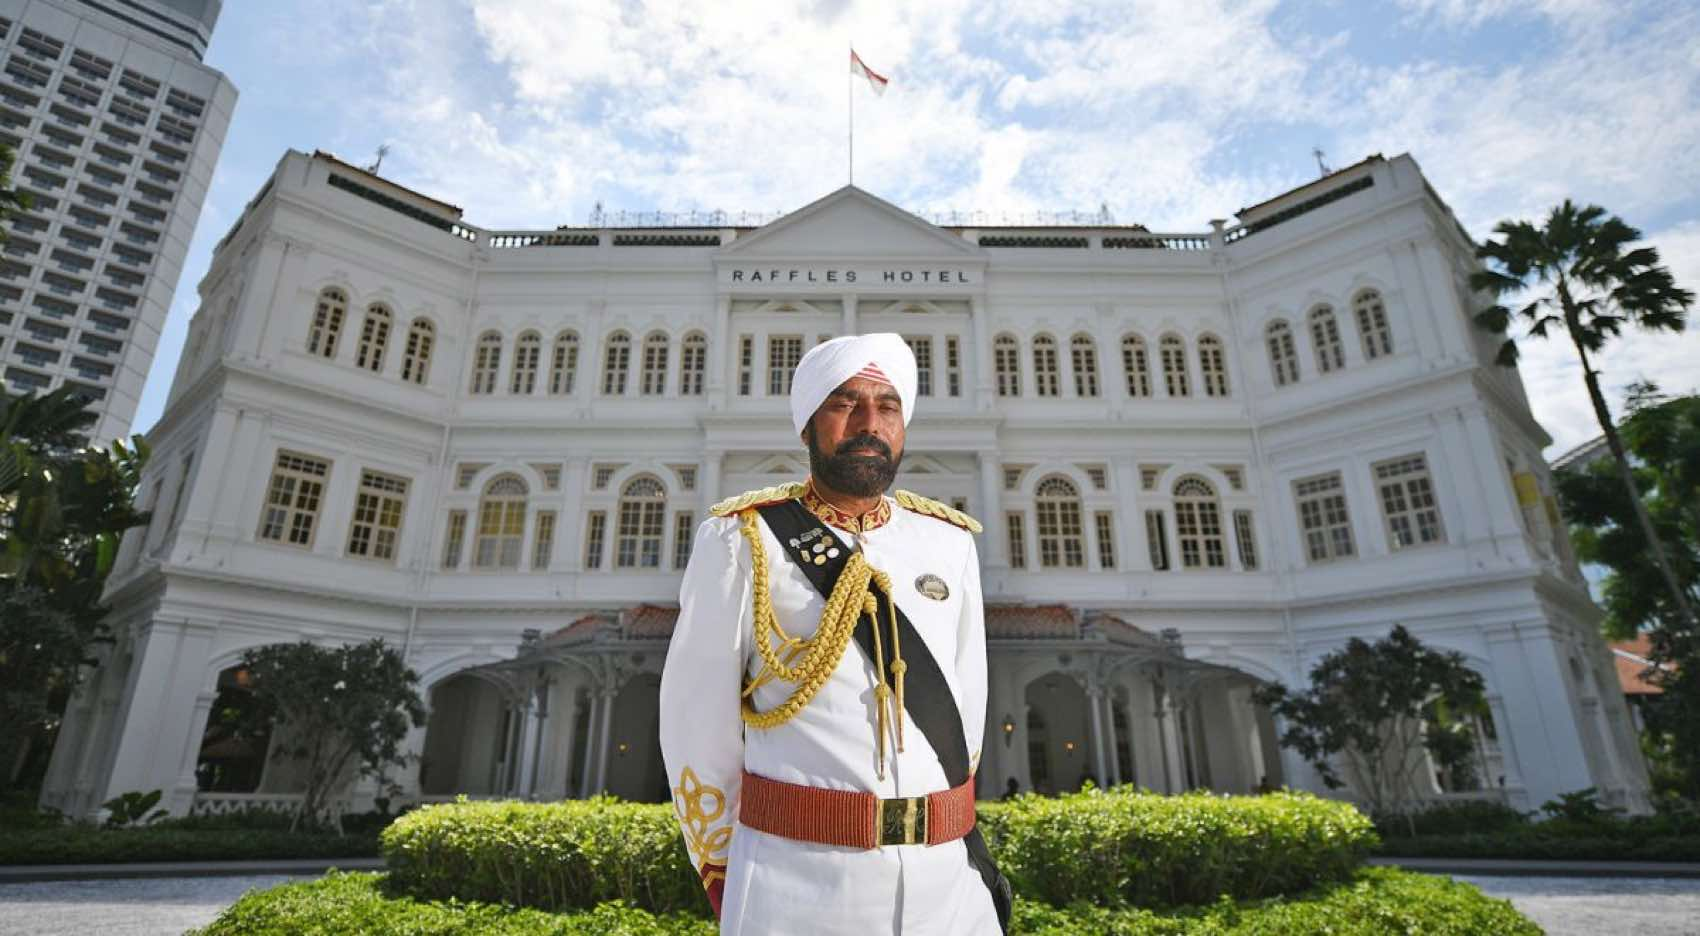 Narajan Singh and two other Sikh doormen of Raffles Hotel are the brand ambassadors of the grand old institution.